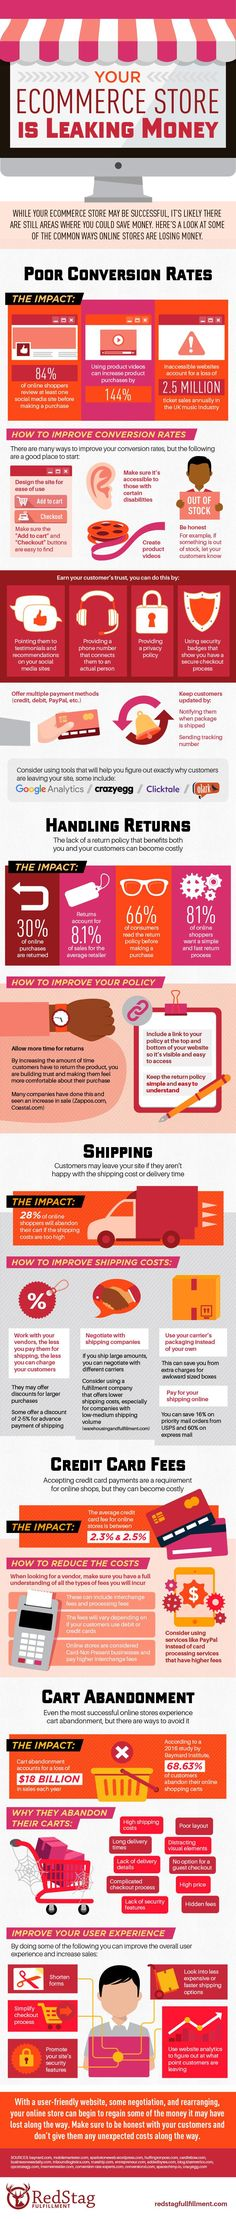 Your Ecommerce Website Is Leaking Money - Infographic